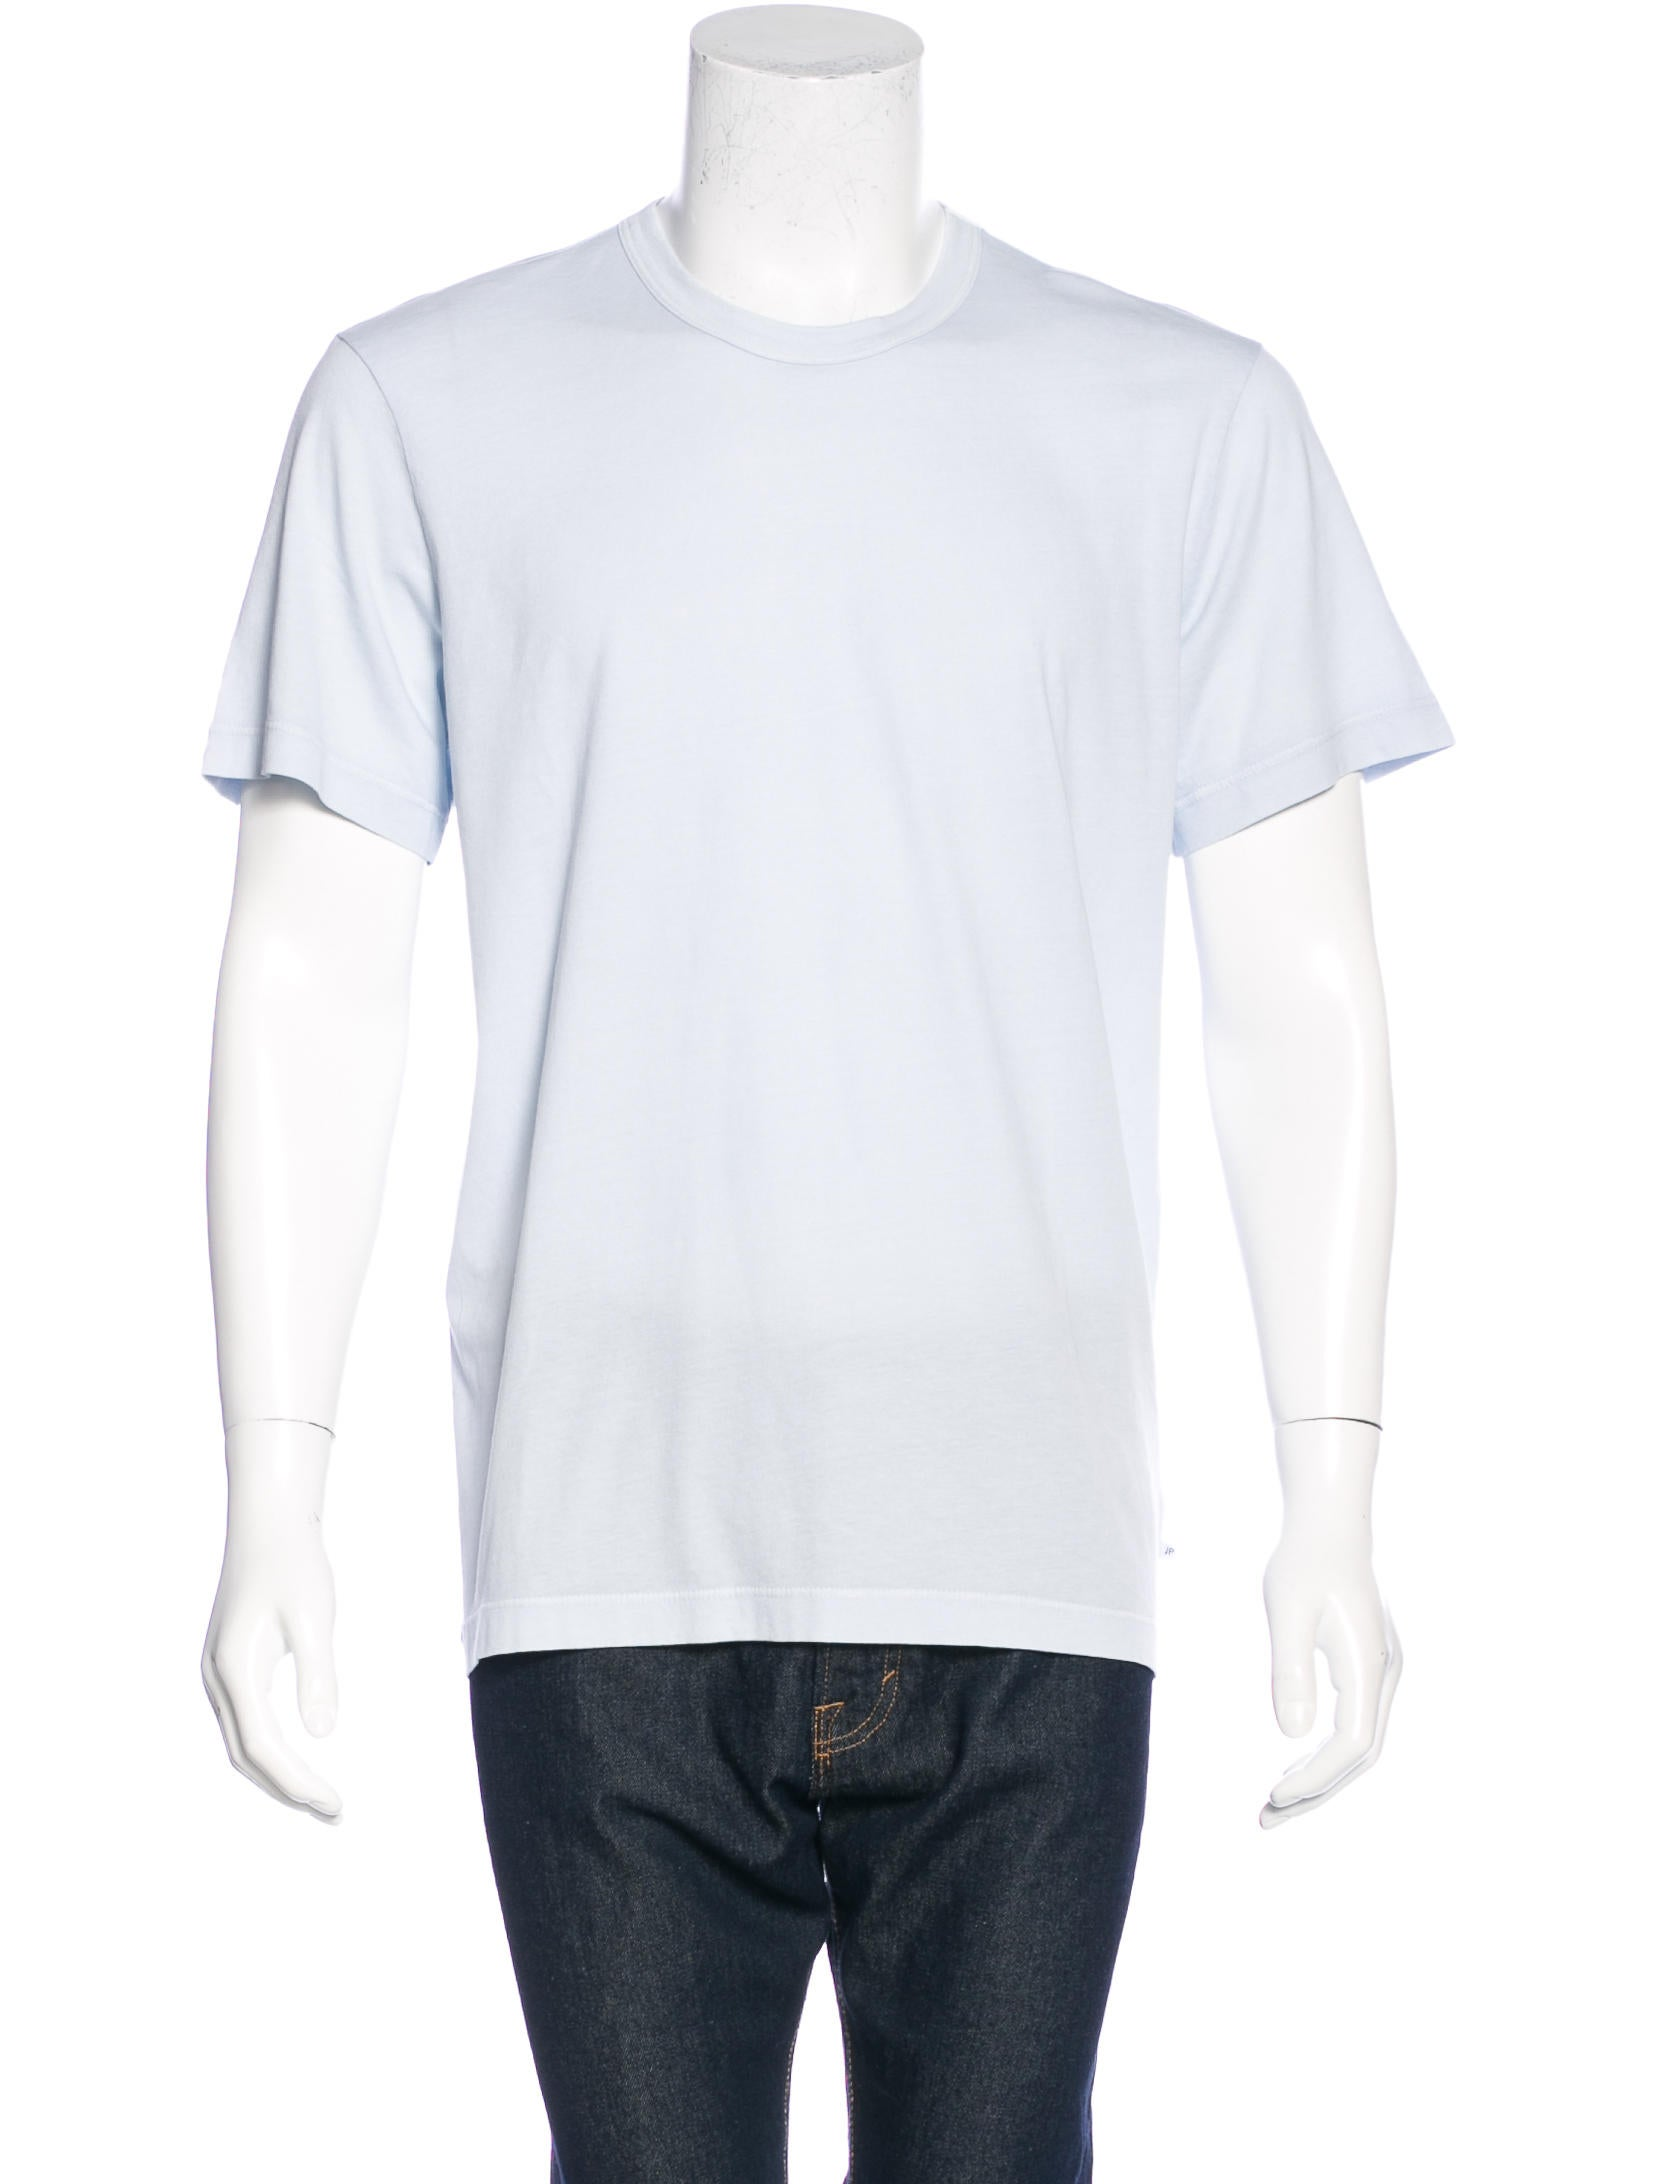 James perse 2 pack t shirt w tags clothing wjp20116 for James perse t shirts sale